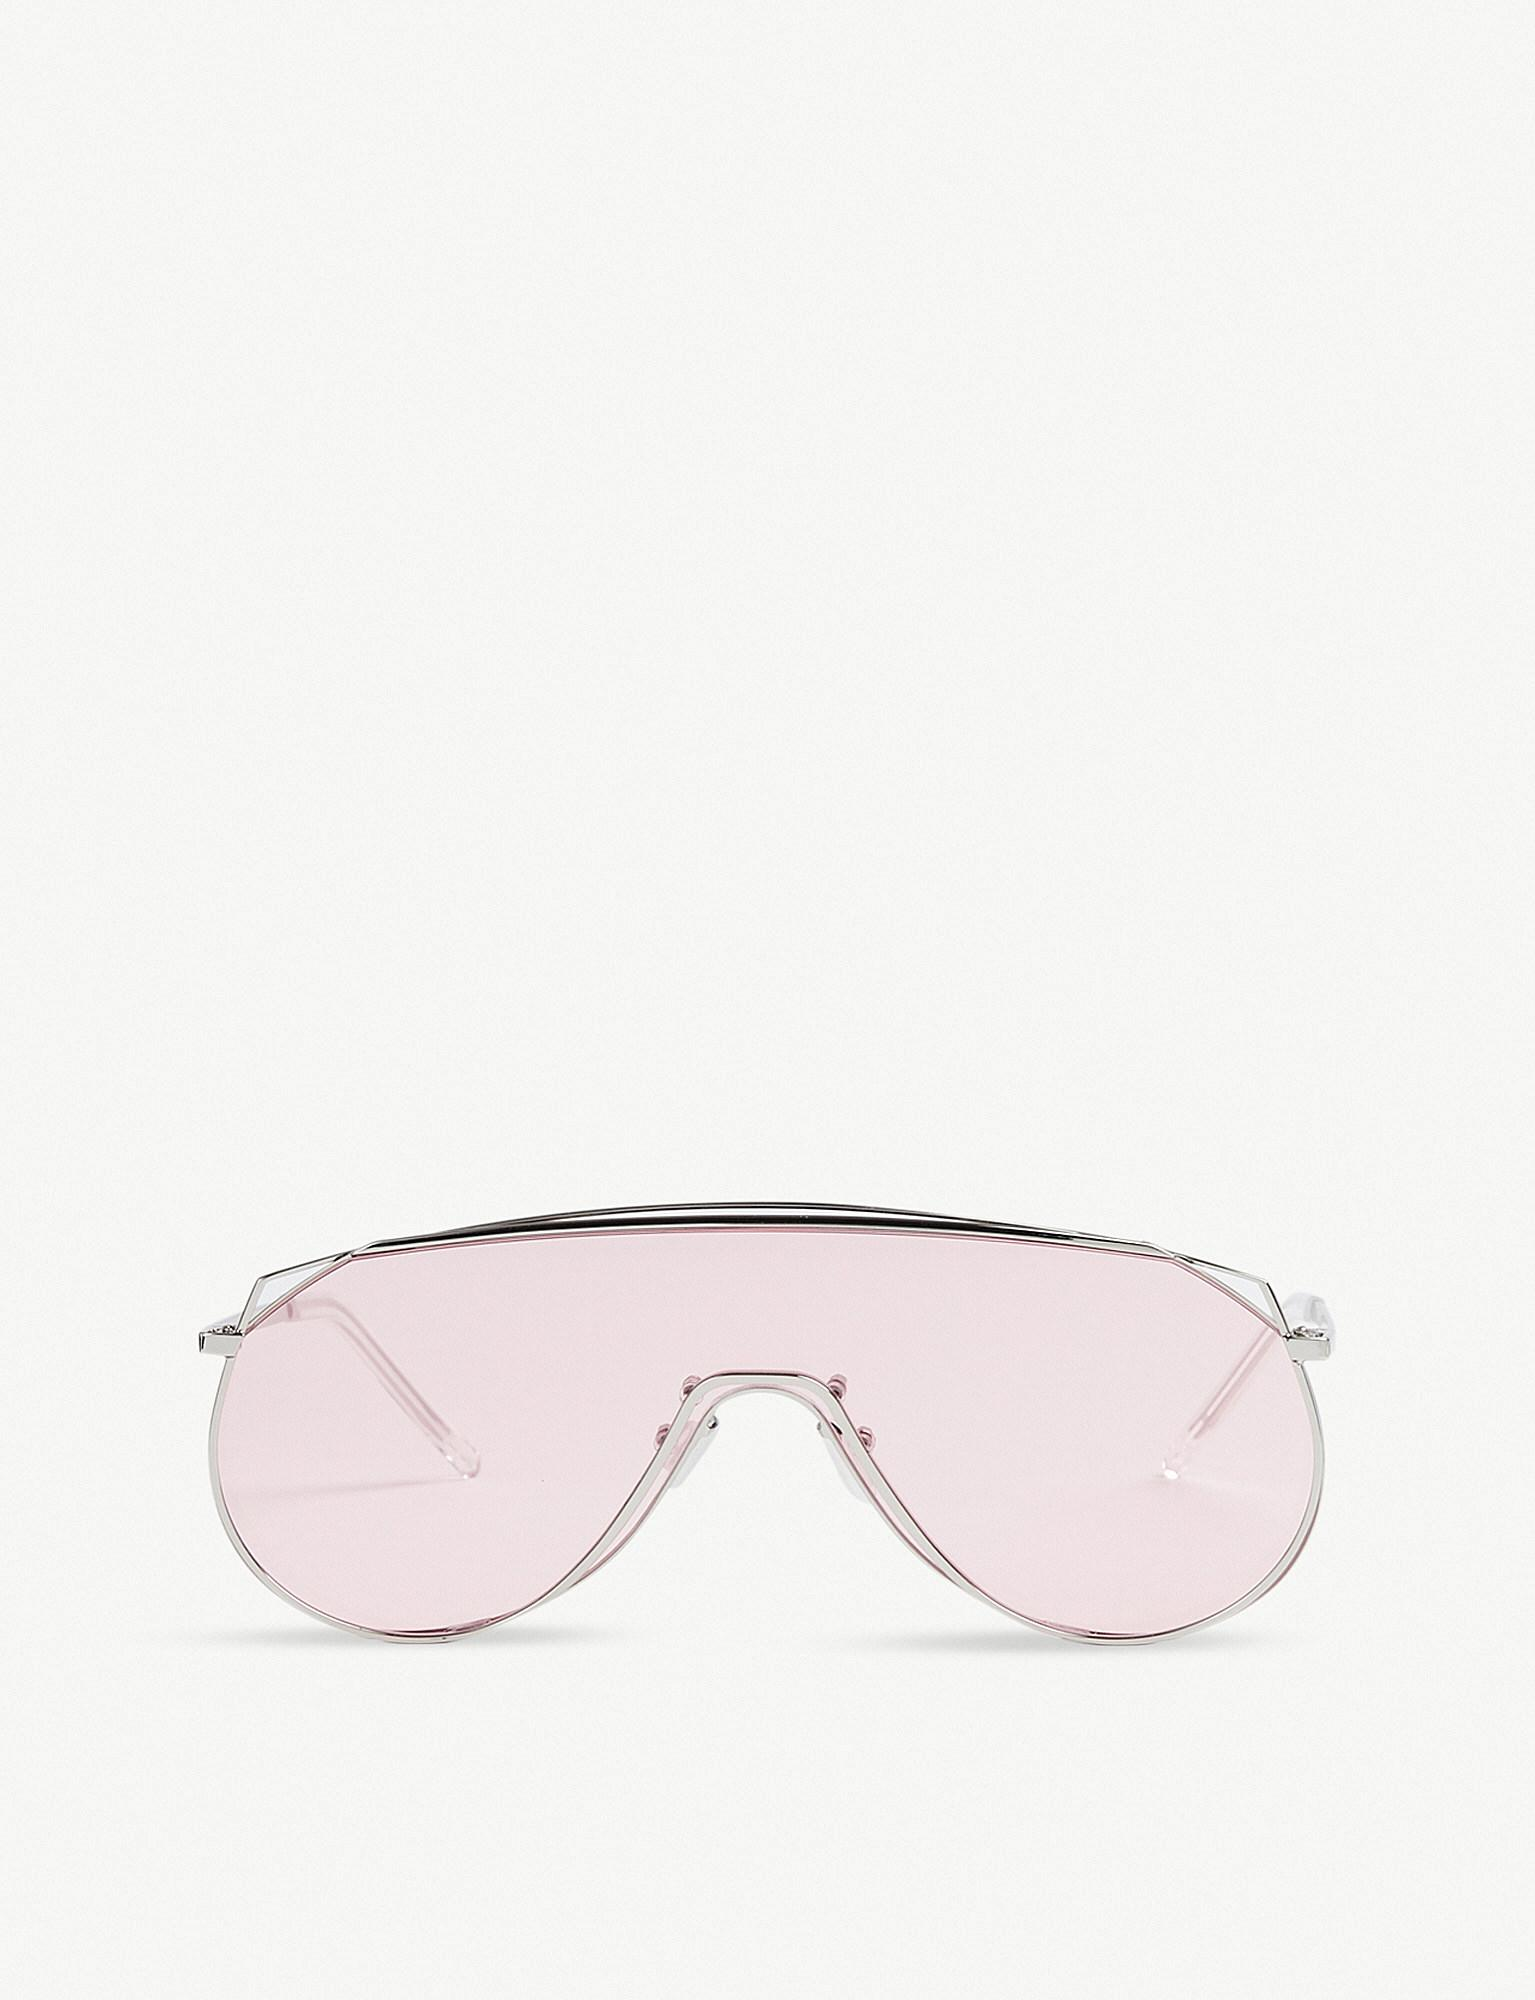 2810554a44 Gentle Monster Afix Stainless Steel Sunglasses in Pink - Lyst